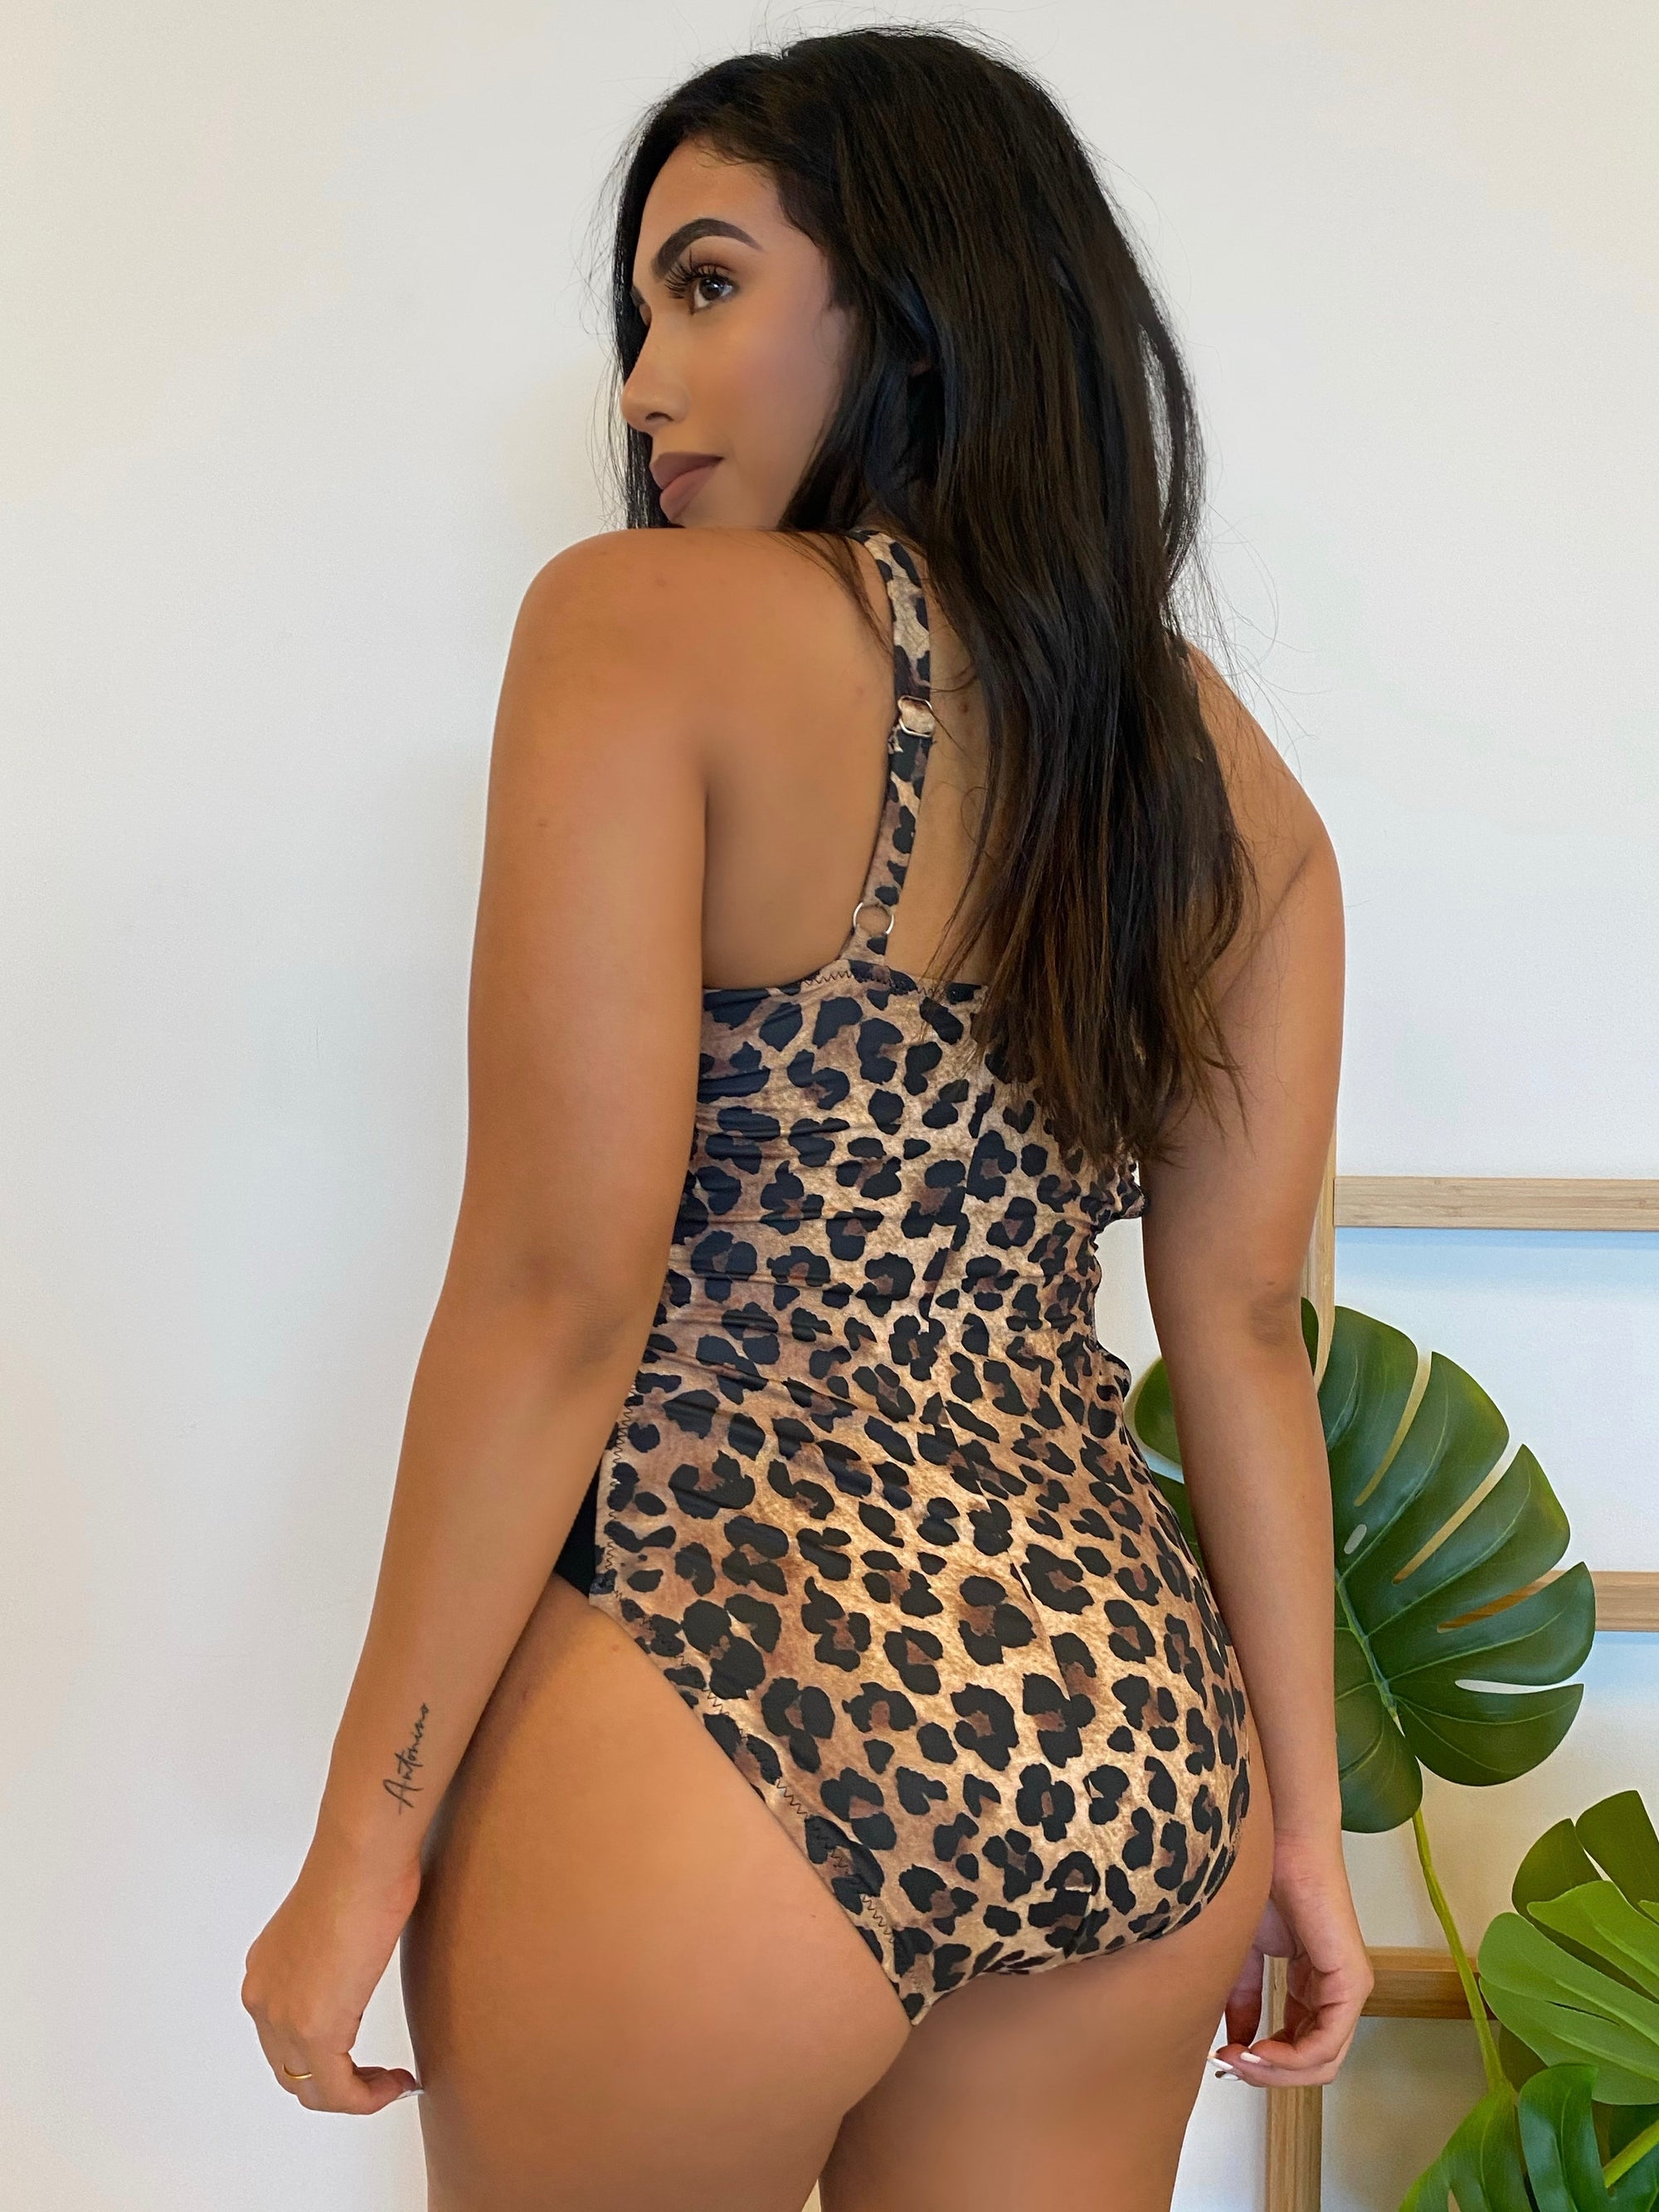 leopard one piece bathing suit, side cut outs, cheeky bottoms